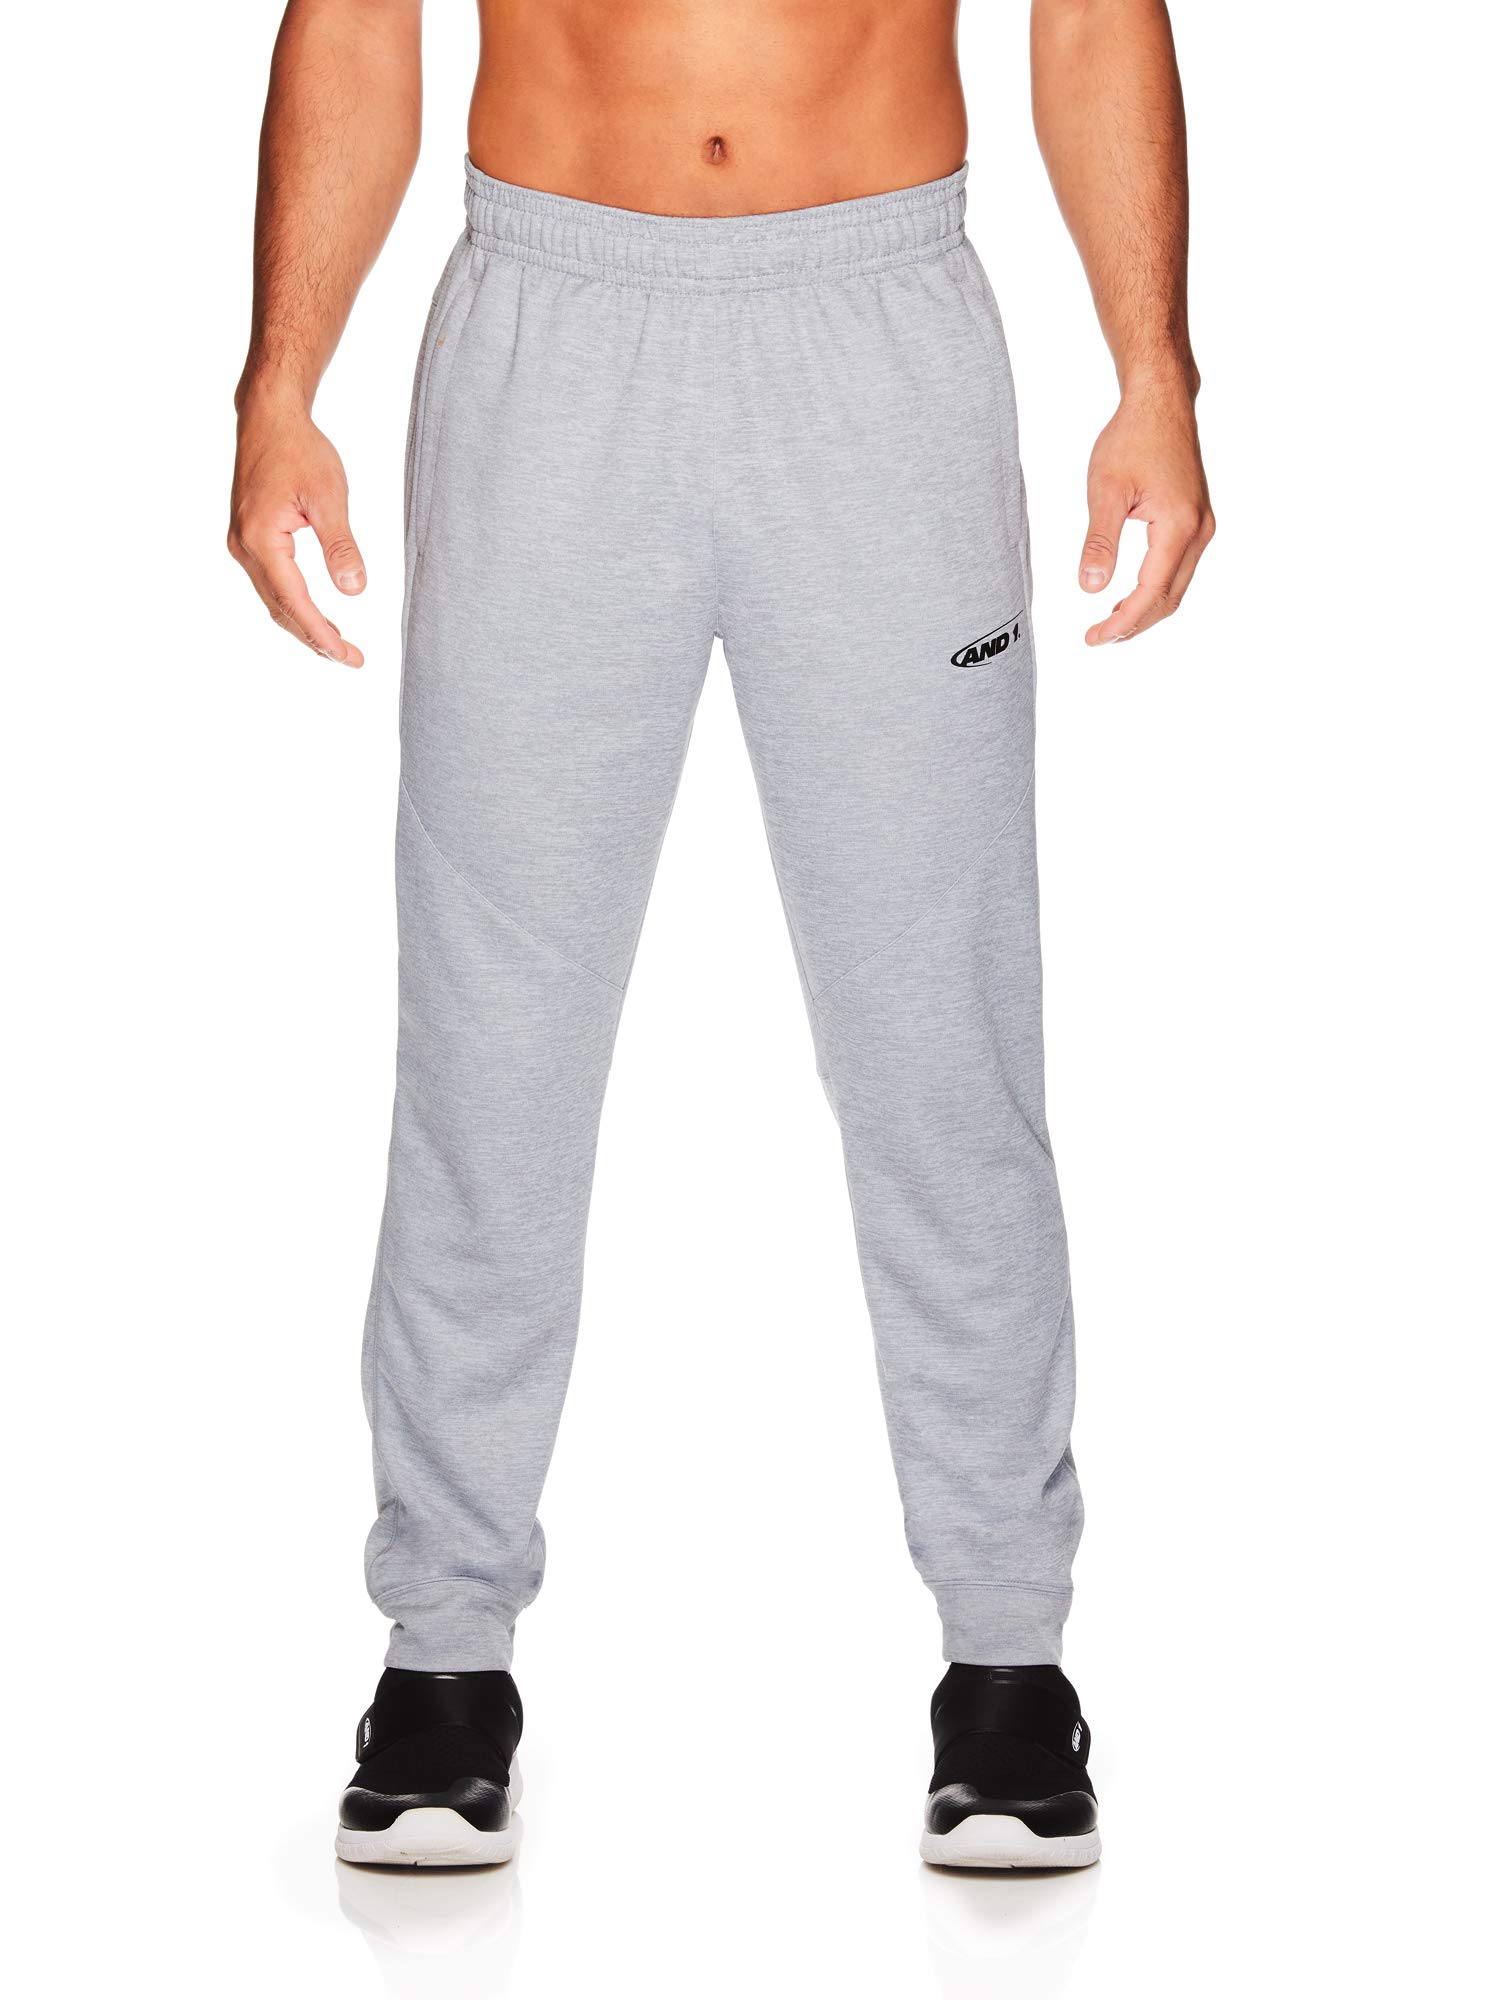 AND1 Men's Tricot Jogger Pants - Basketball Running & Jogging Sweatpants w/Pockets - Grey Heather, Small